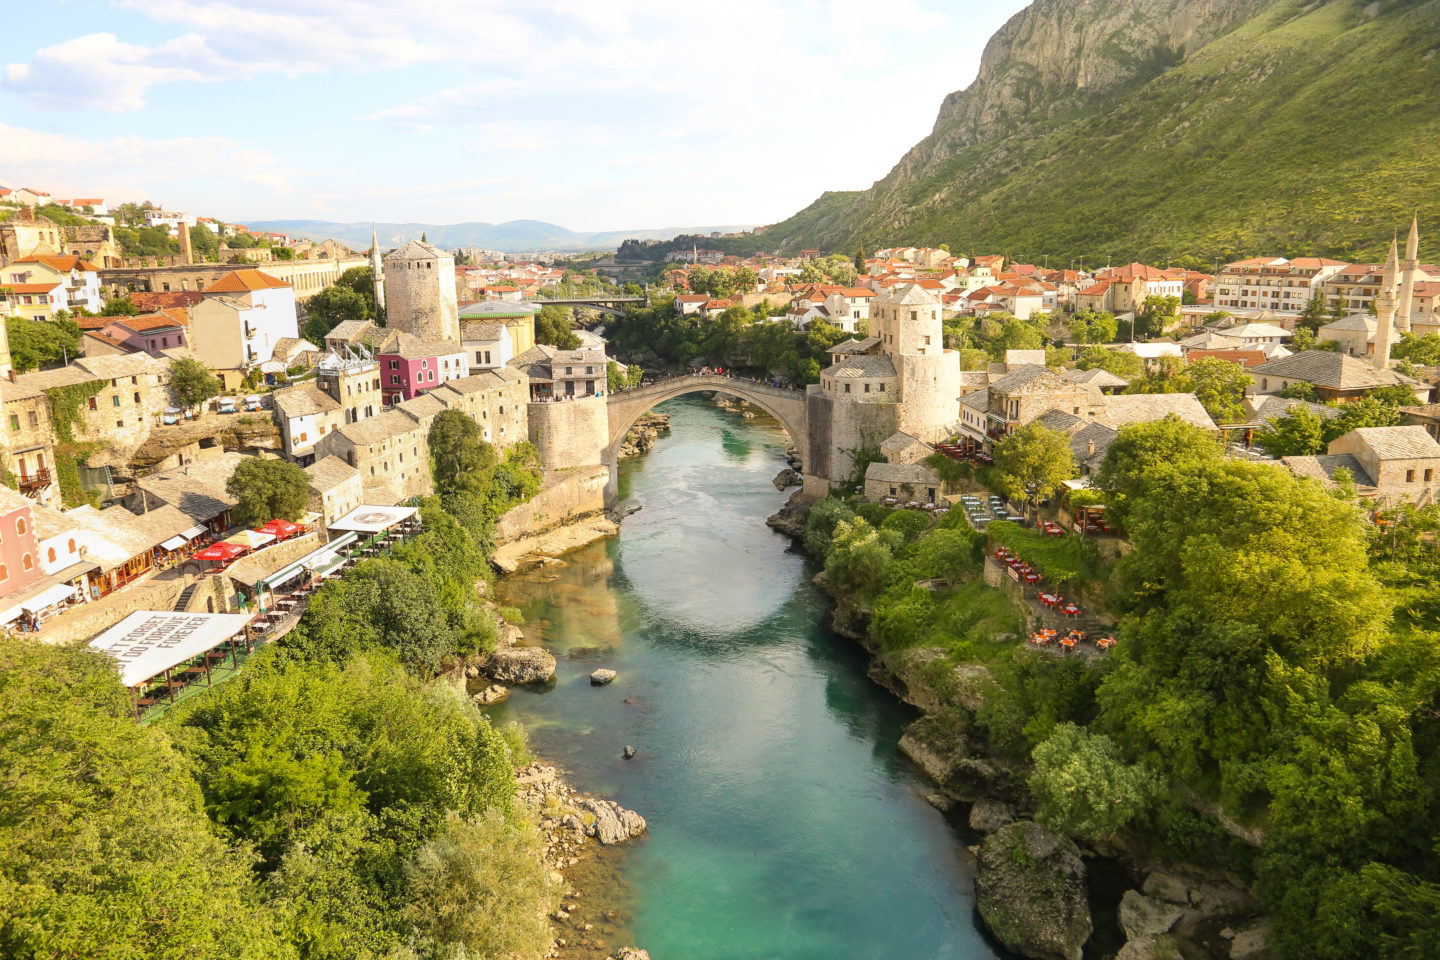 Mostar: A Guide To Bosnia's Fairytale City